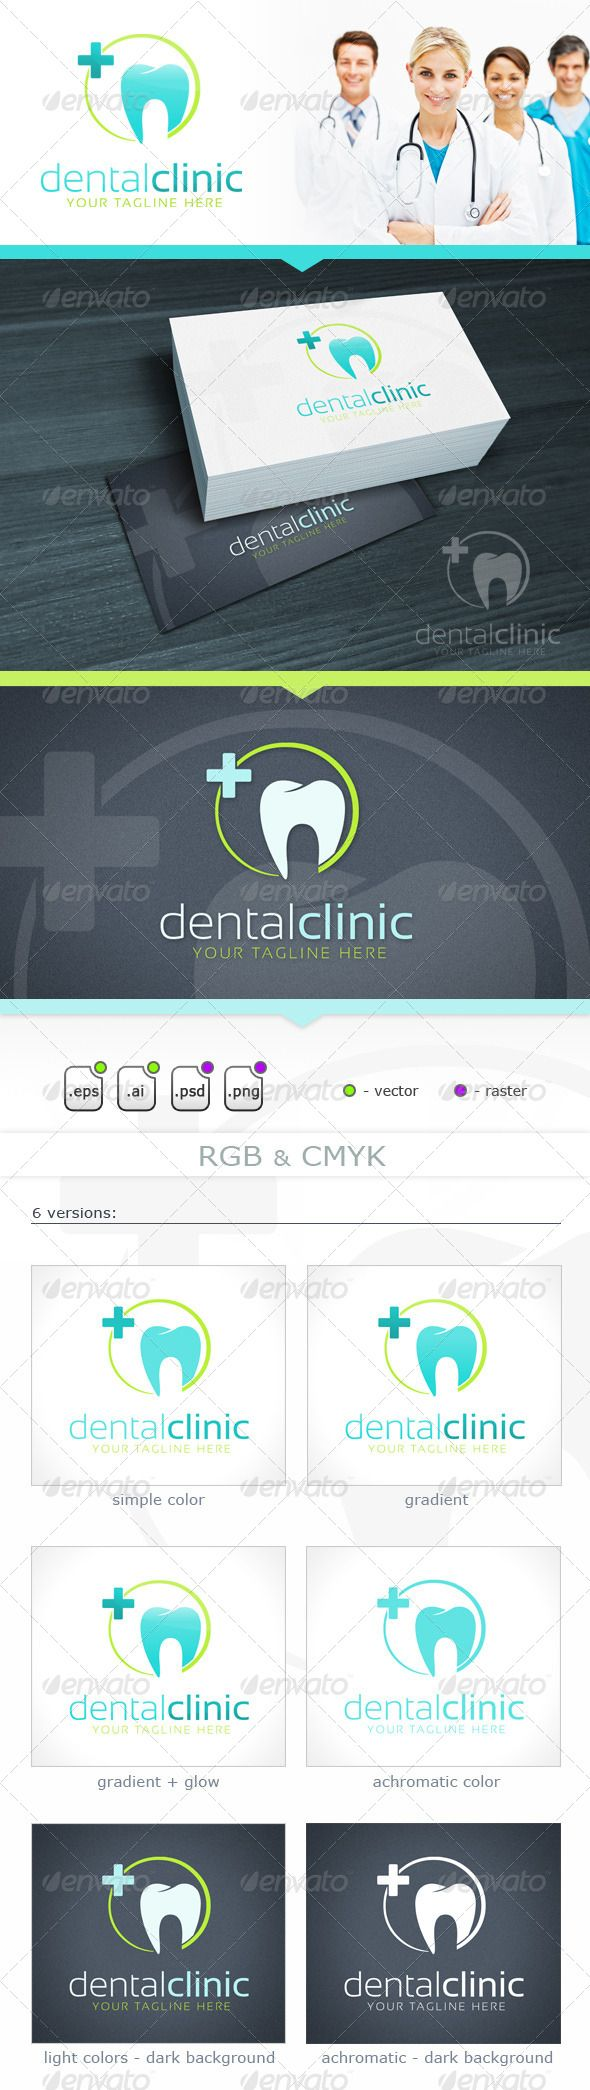 Dental Clinic  #GraphicRiver         Dental Clinic is a blue and green teeth logo, suited for dental service business or a dentistry.  	 - vector files: EPS, AI (resizable) - raster files: PNG, PSD (editable text) - RGB and CMYK (PSD) - 6 color version  	 Free Font Used: Sansation ( .dafont /sansation.font)     Created: 5November13 GraphicsFilesIncluded: PhotoshopPSD #